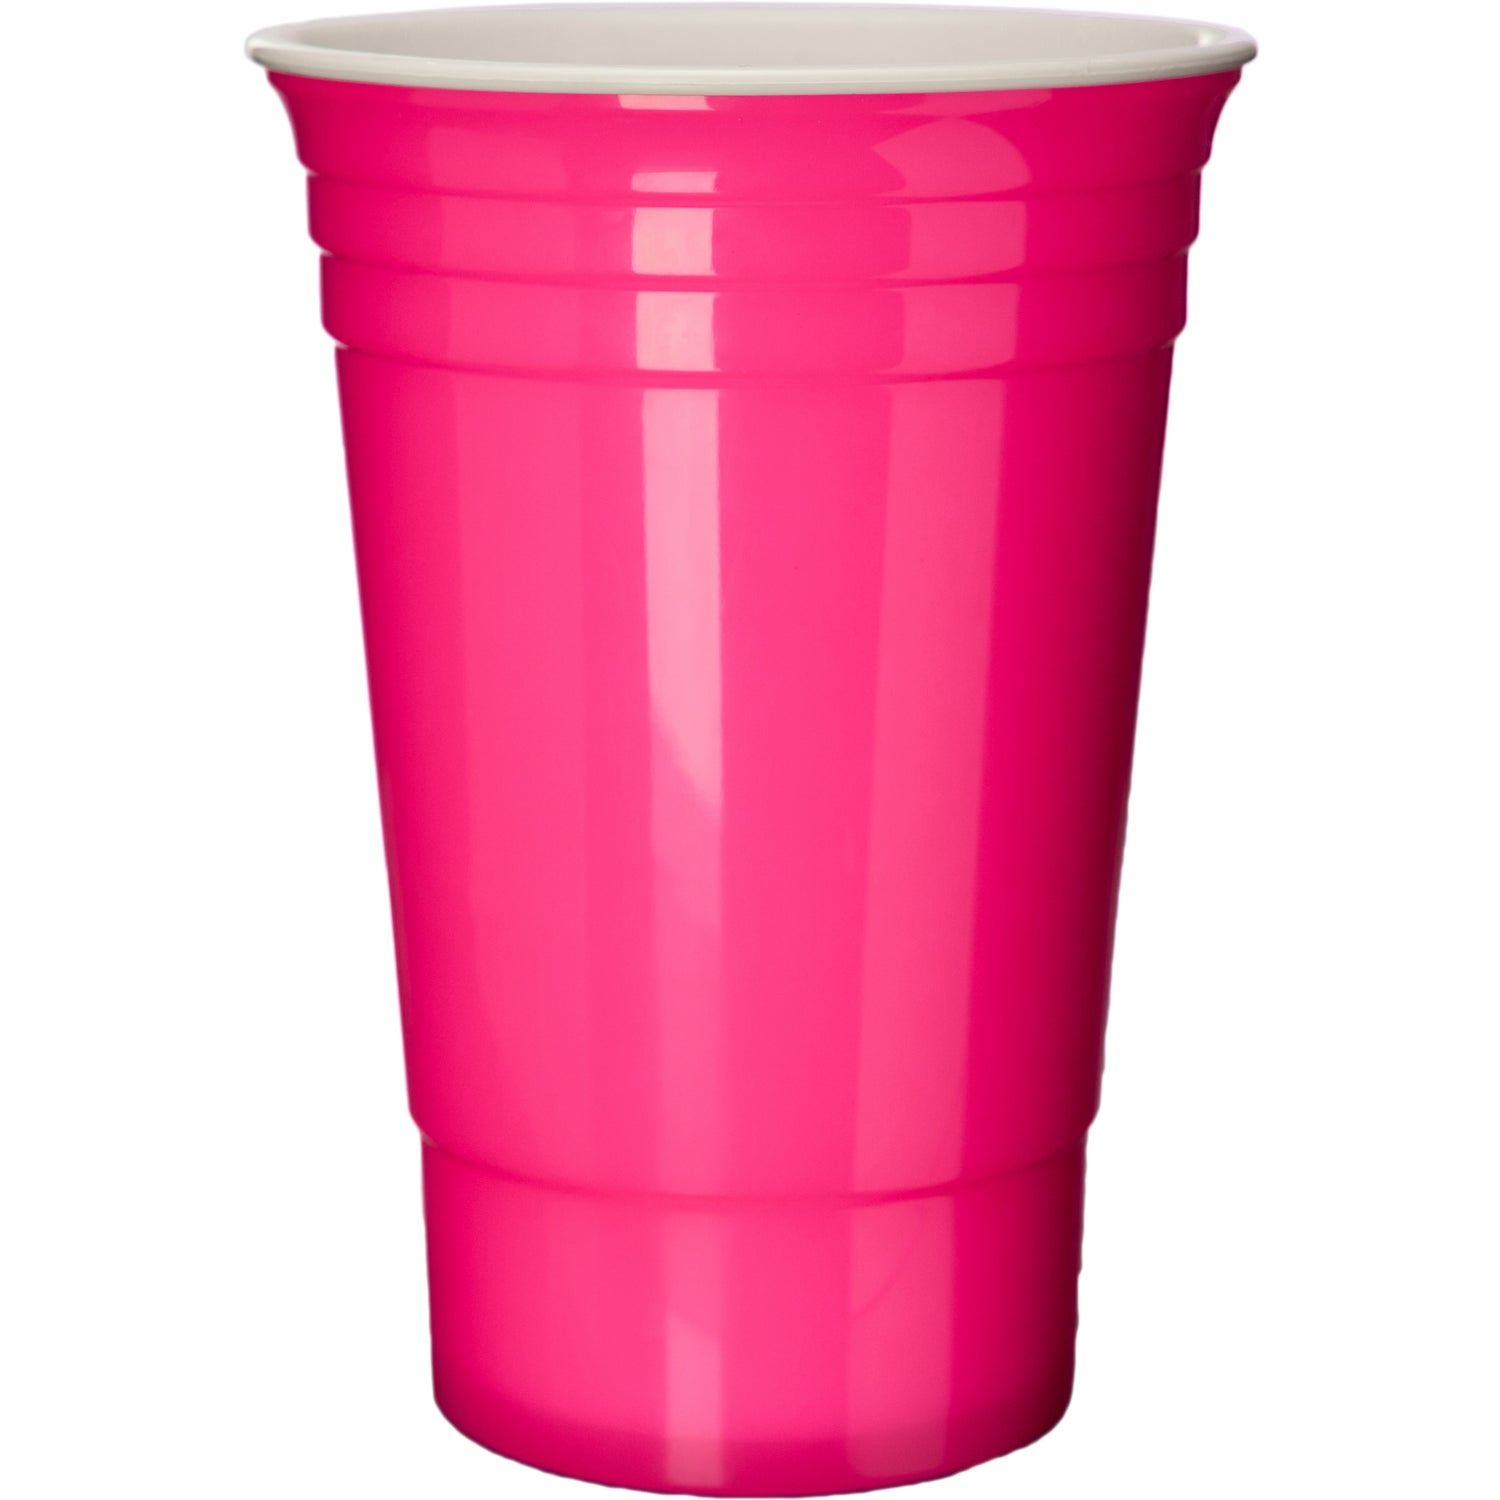 3c836522652 CLICK HERE to Order 16 Oz. Solo Cup Style Promotional Cups Printed with  Your Logo for $1.62 Ea.